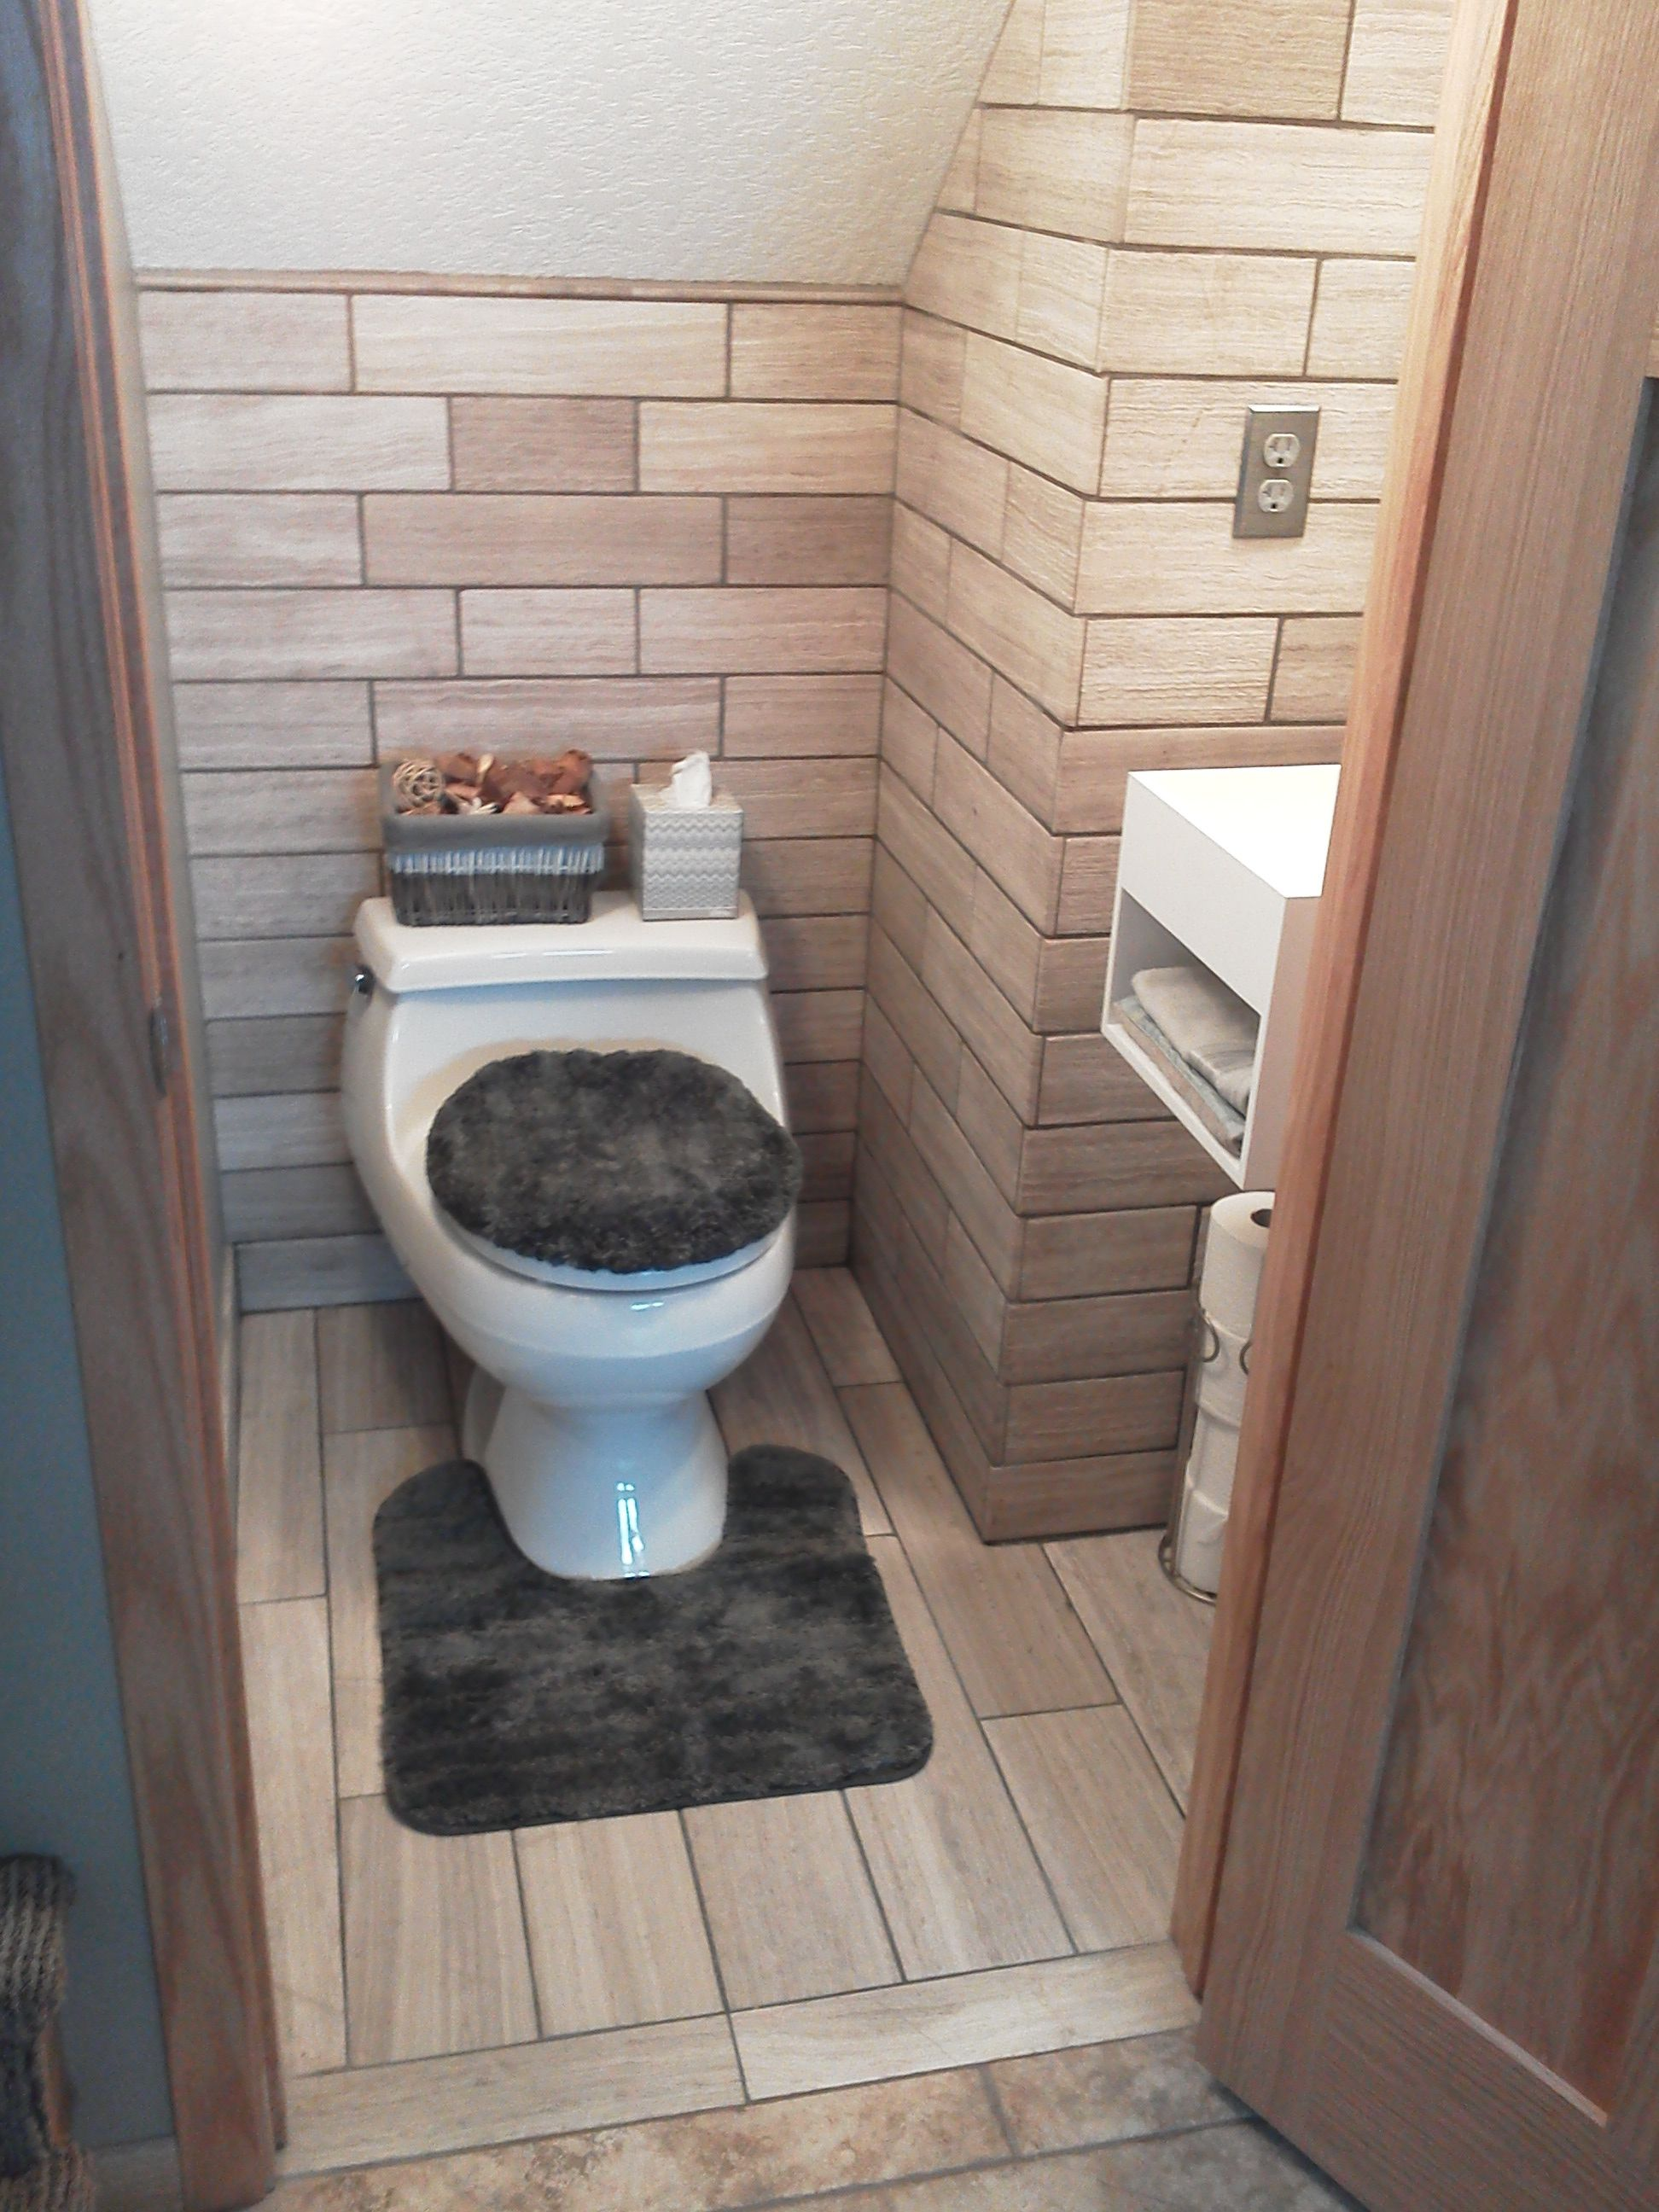 Bathroom Remodeling Tile Contractor Des Moines IA Bath - Bathroom remodeling des moines ia